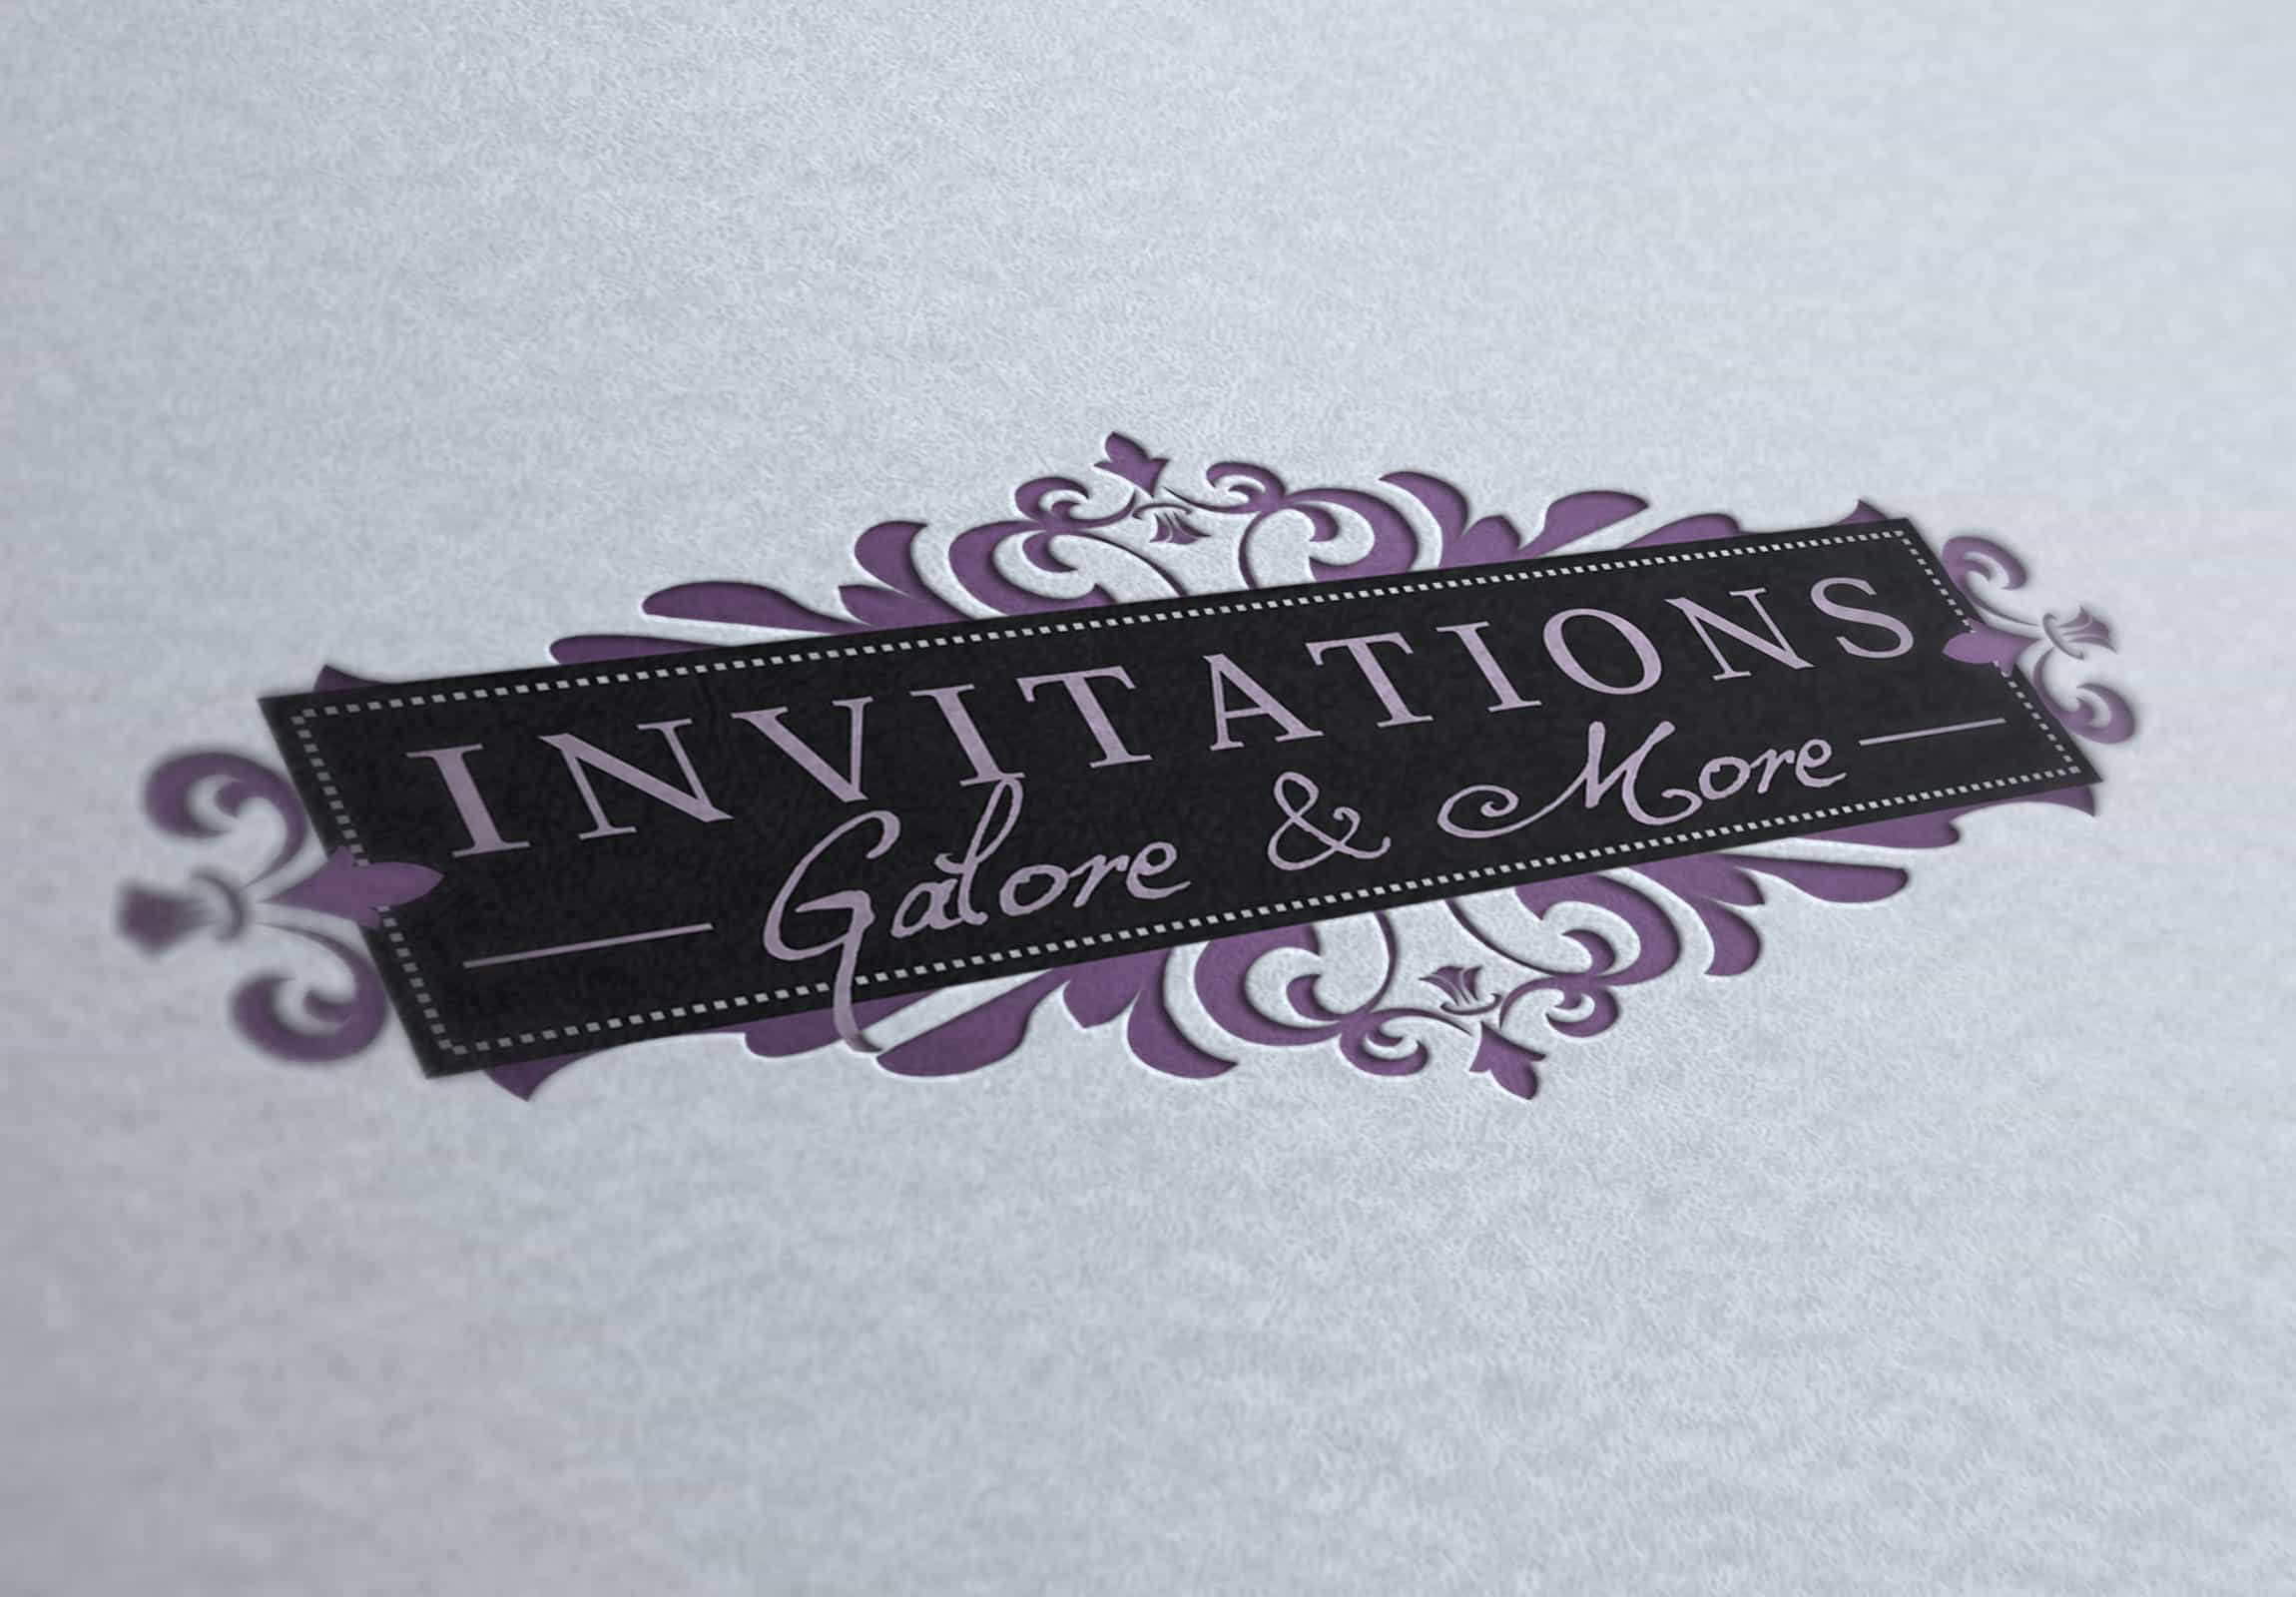 Invitations Galore & More - Branding & Marketing